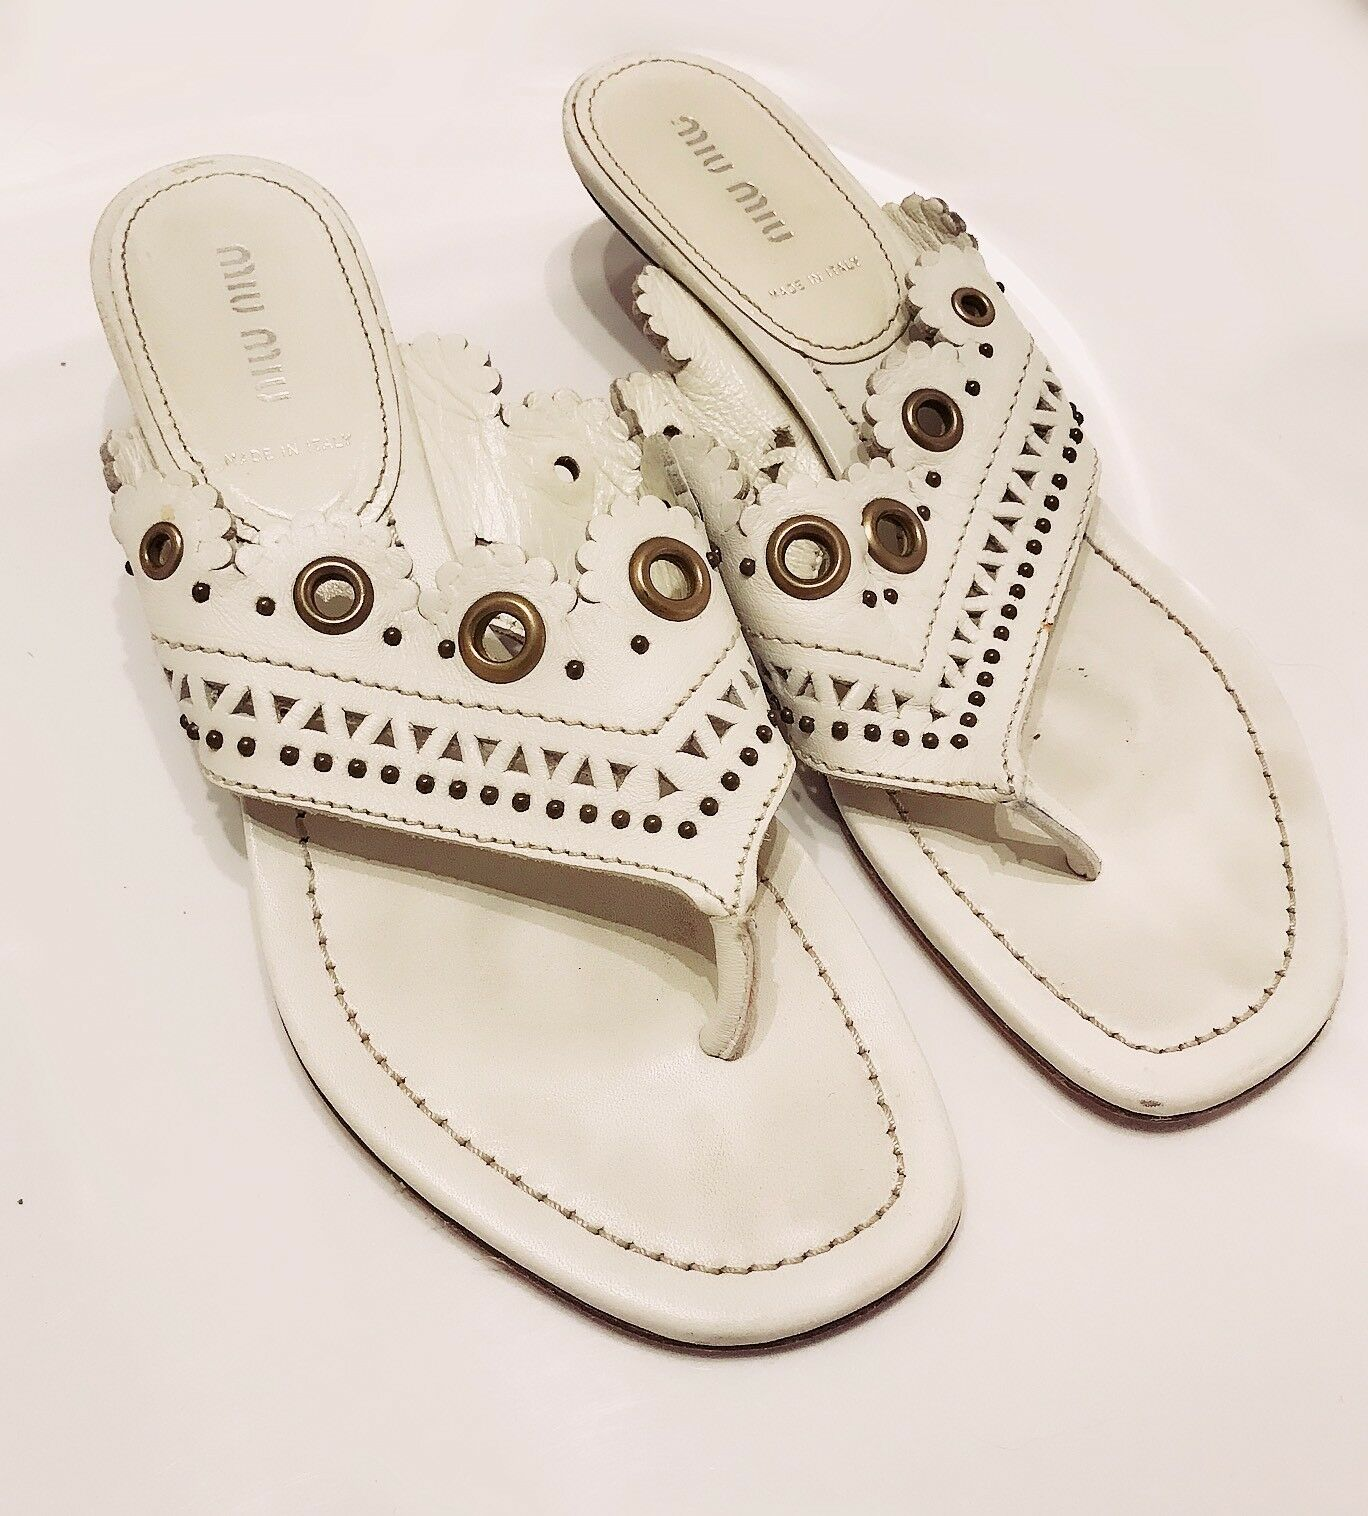 Women's - MIU MIU - Tangiers White Leather Leather Leather Stud Kitten Heel Sandals - 7   37.5 335e26